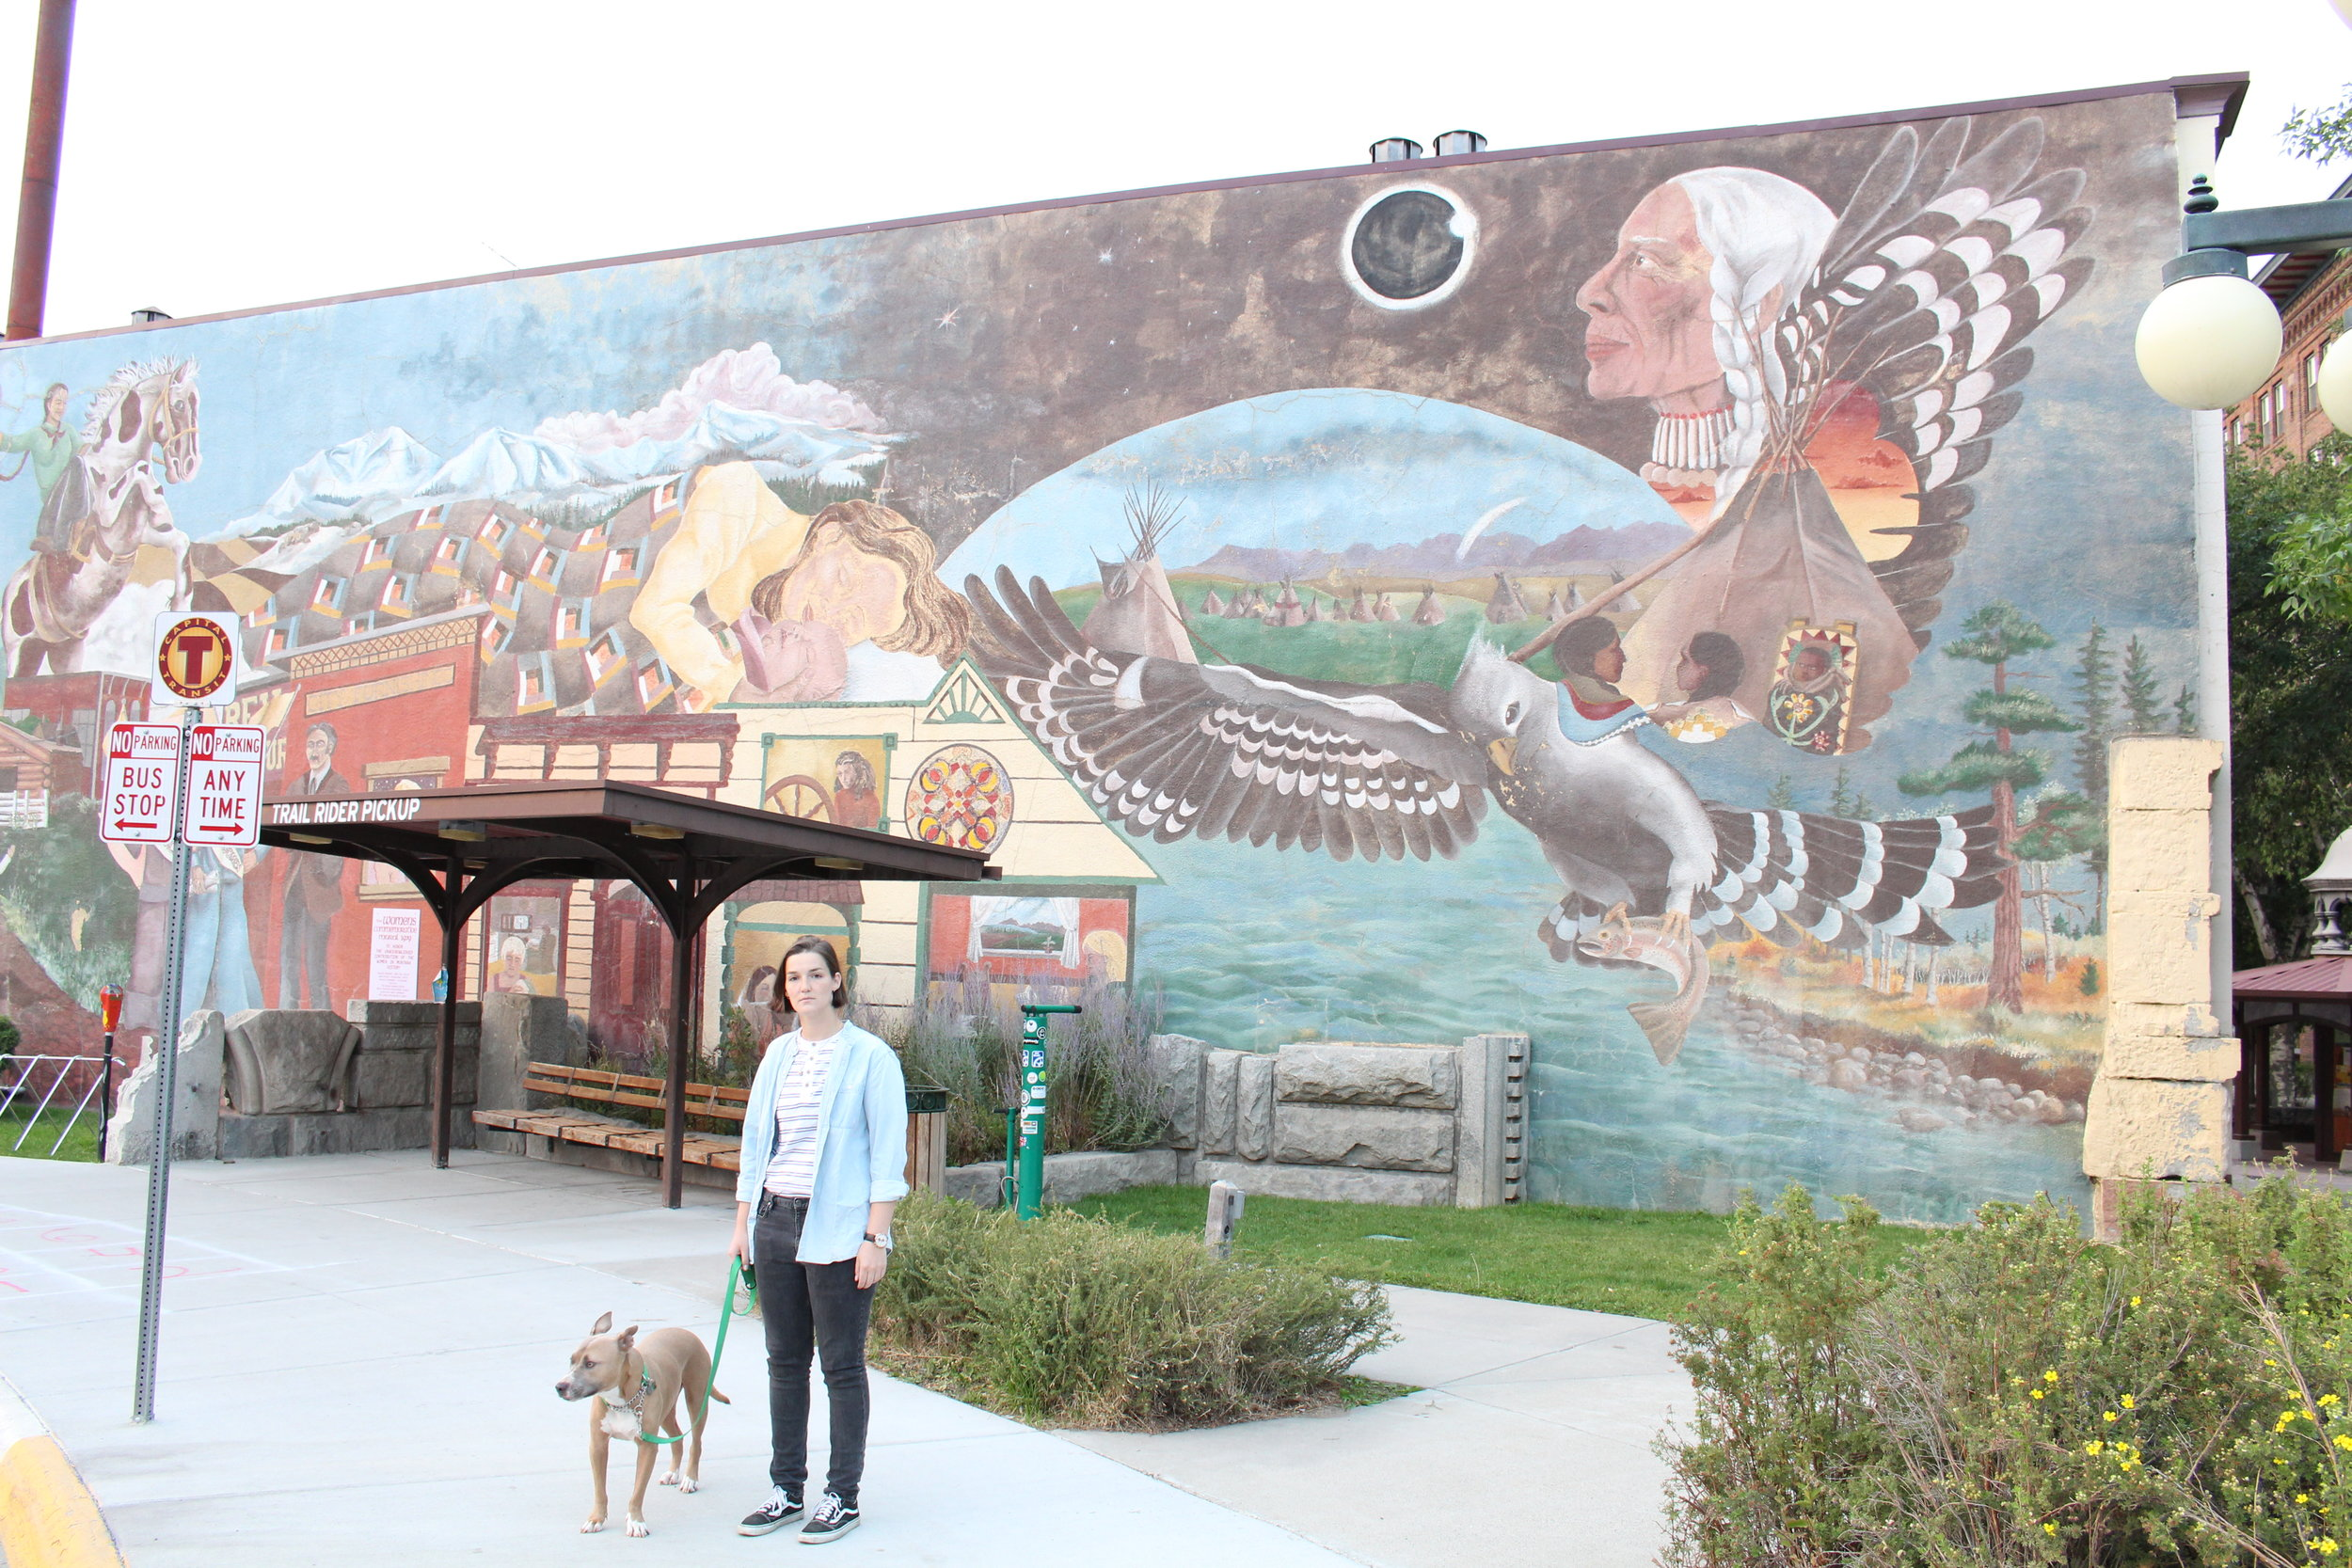 An awesome mural in downtown Helena